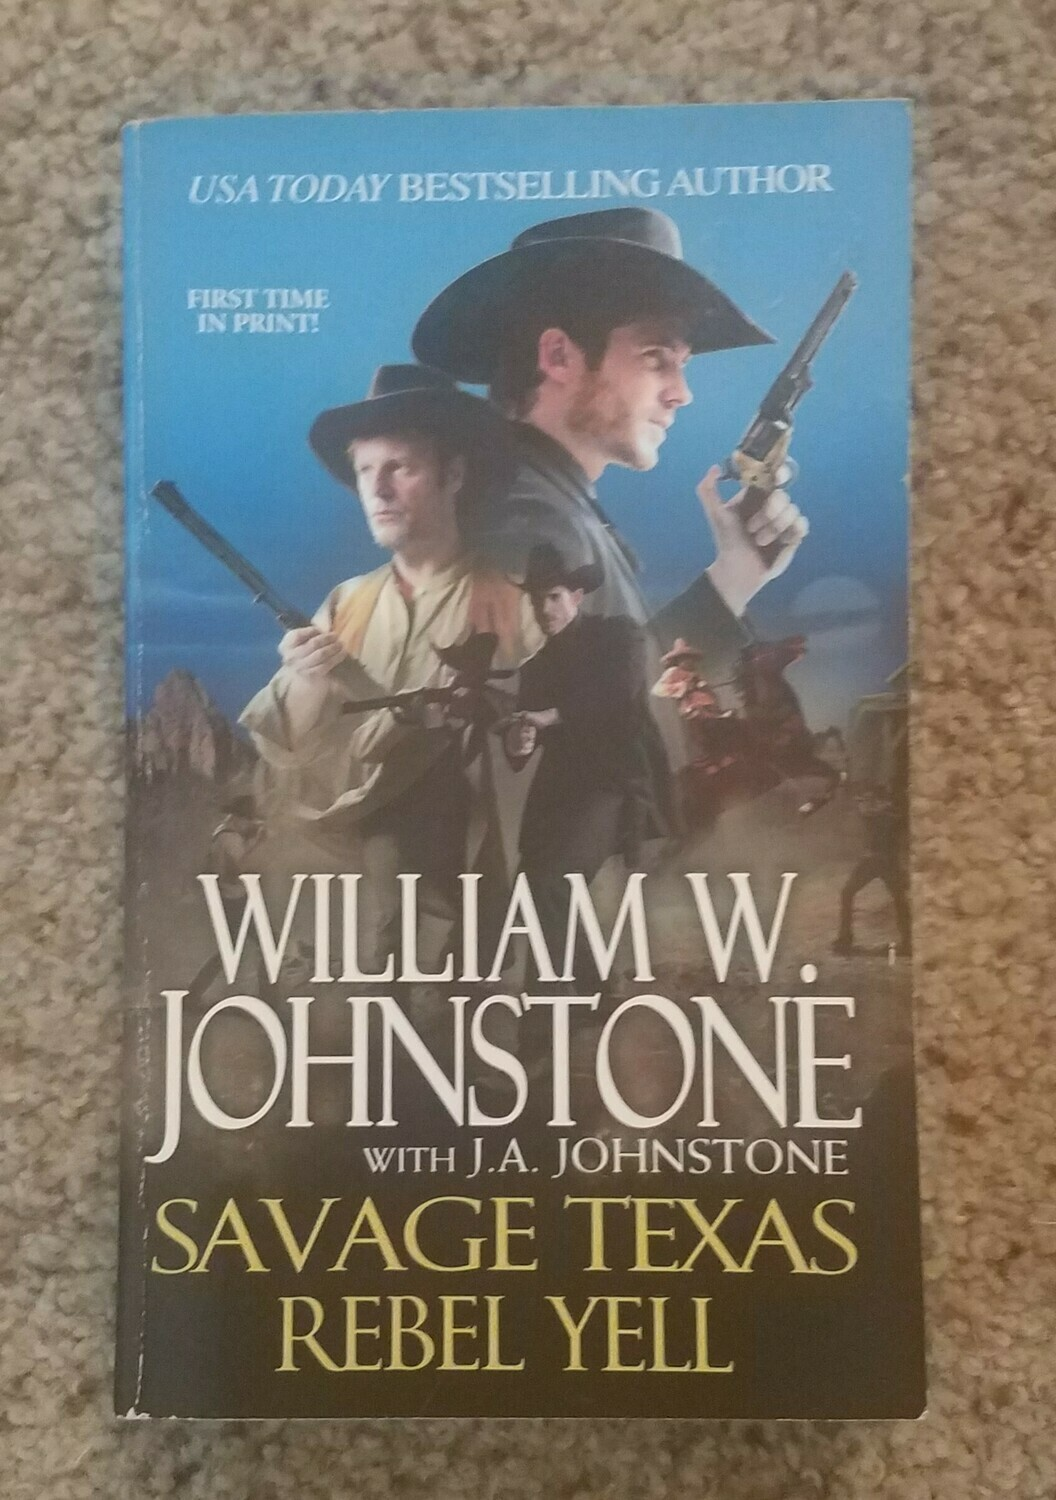 Savage Texas: Rebel Yell by William W. Johnstone with J.A. Johnstone